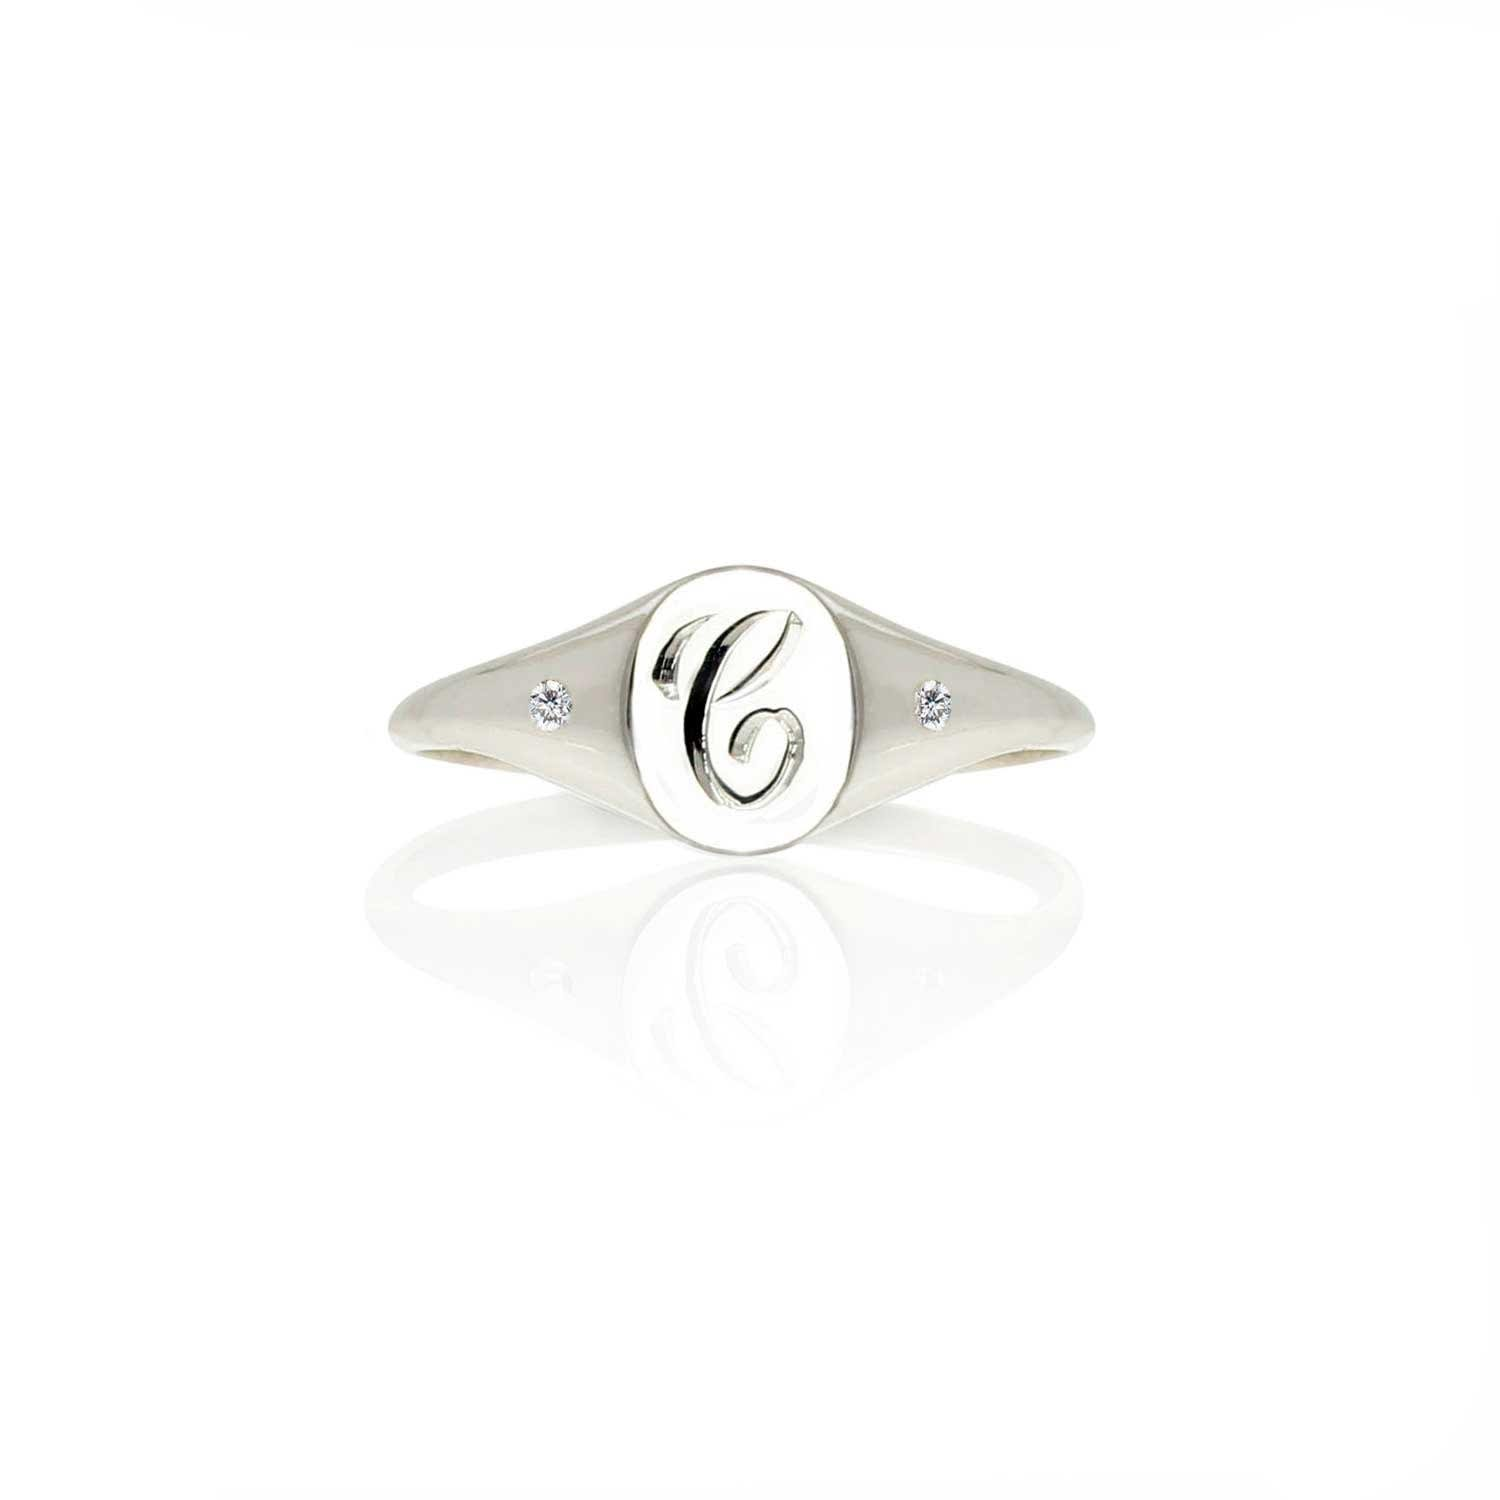 Order Your Initials -Sterling Silver with Rose Gold Personalized Monogram Ring